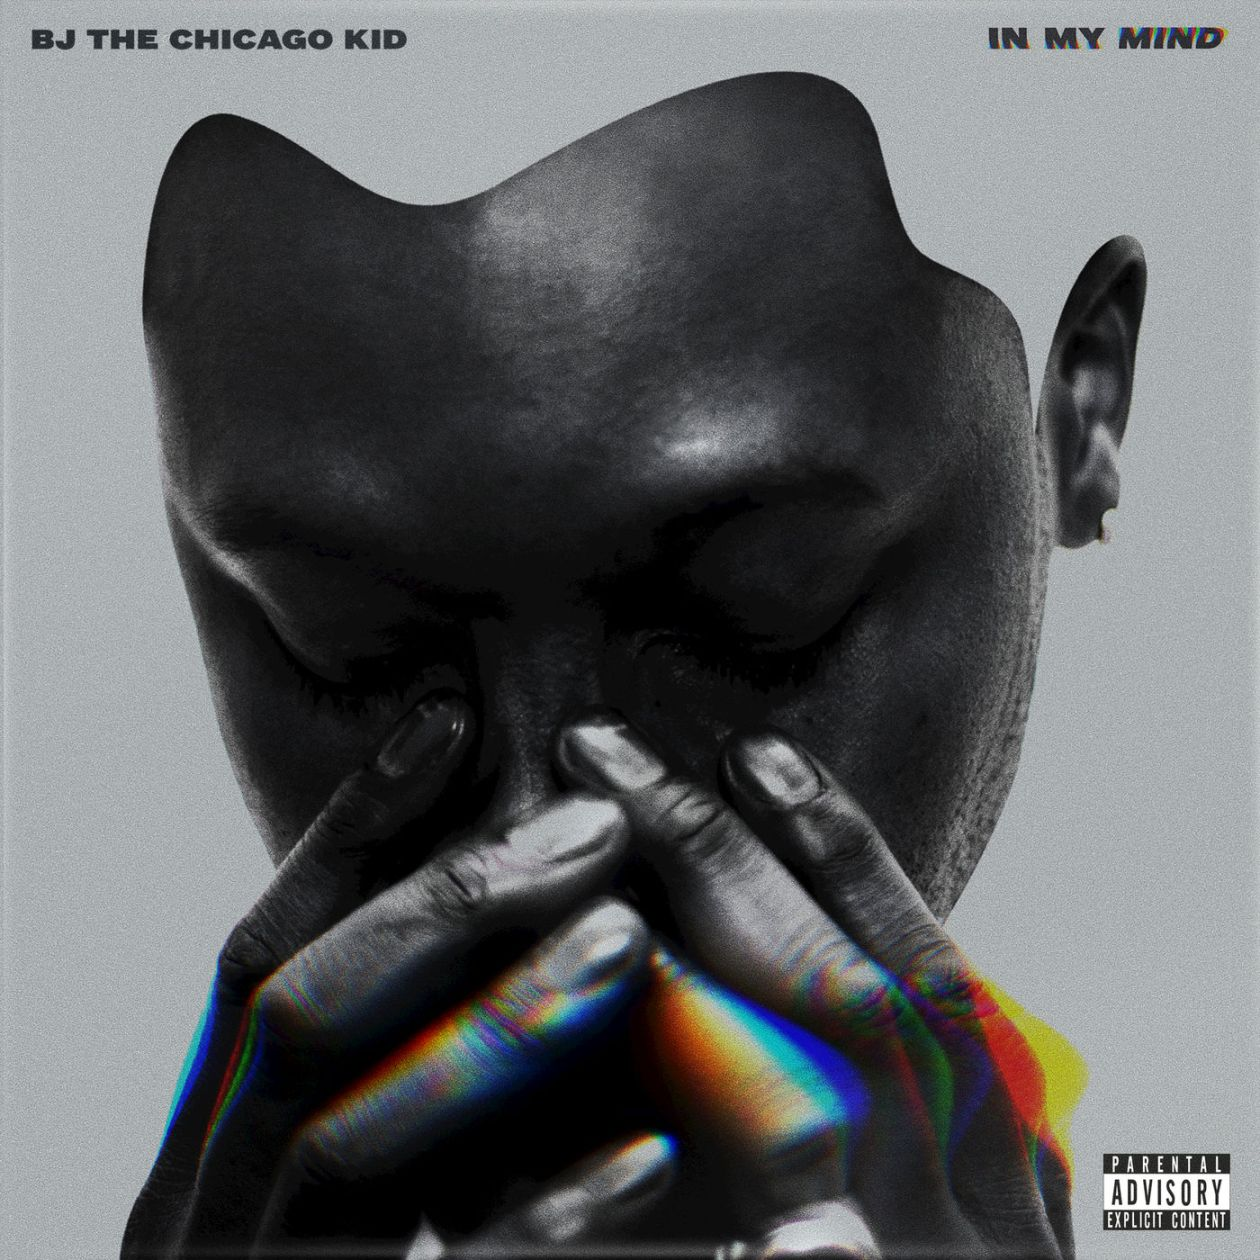 The Breakdown: In My Mind, by BJ the Chicago Kid